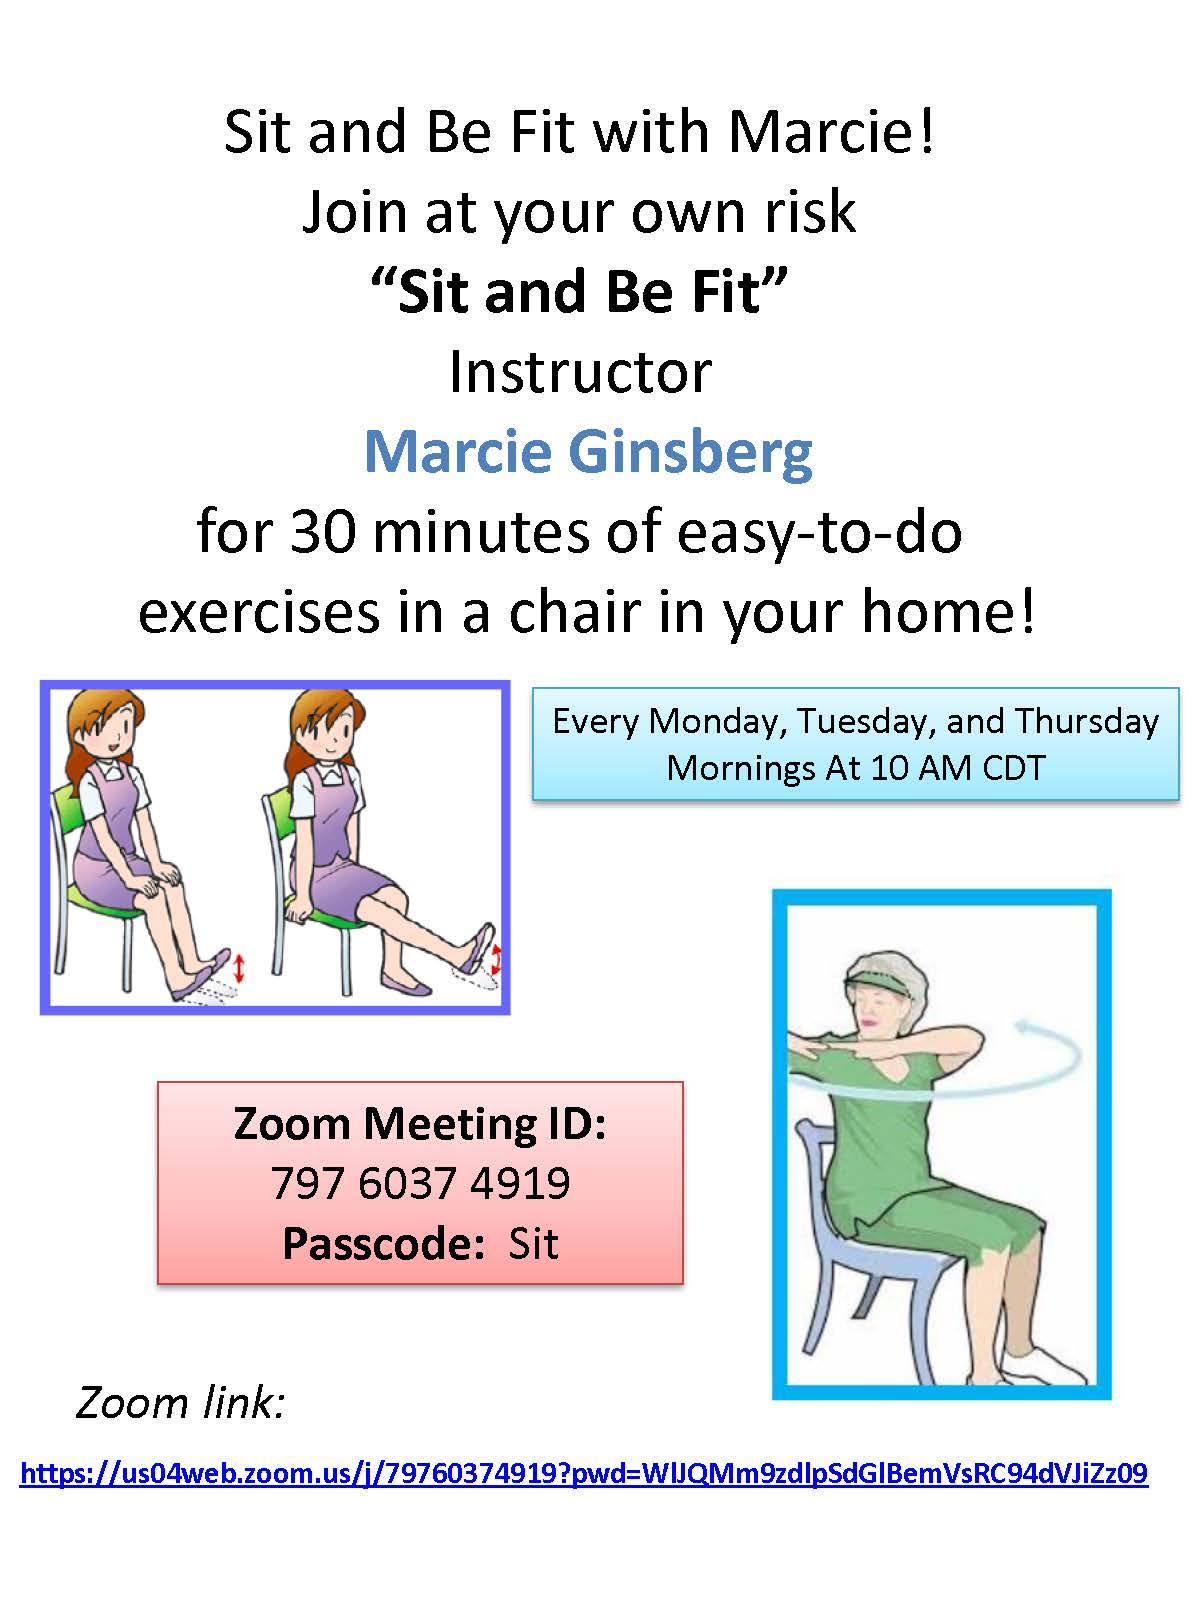 Sit and Be Fit -  30 minutes of easy-to-do exercises in a chair in your home!